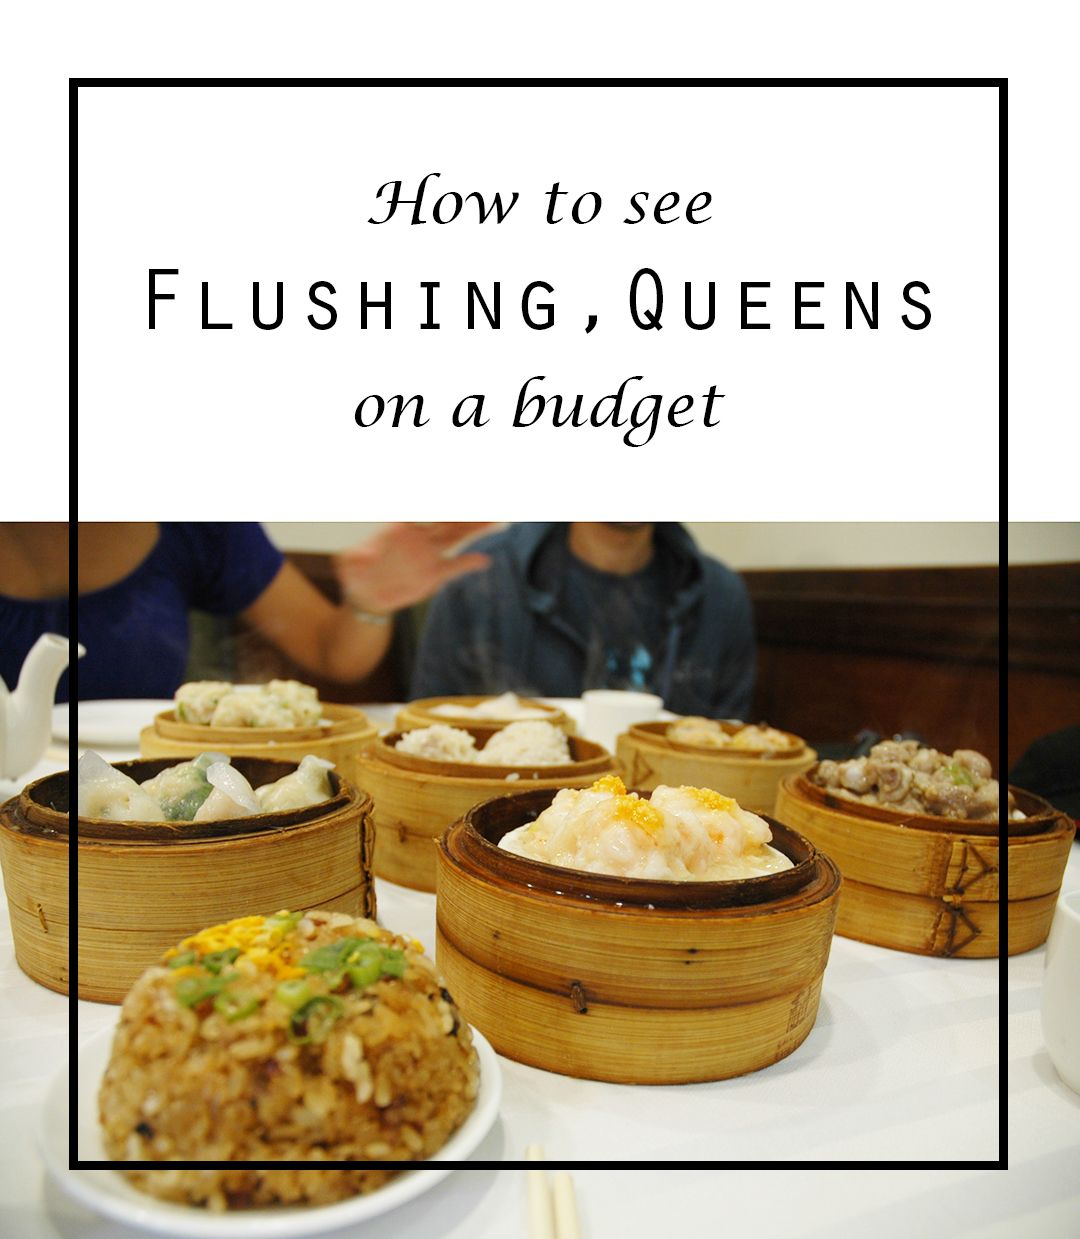 Things To Do In Flushing On A 30 A Day Budget With Images Queens Food Flushing Queens Flushing